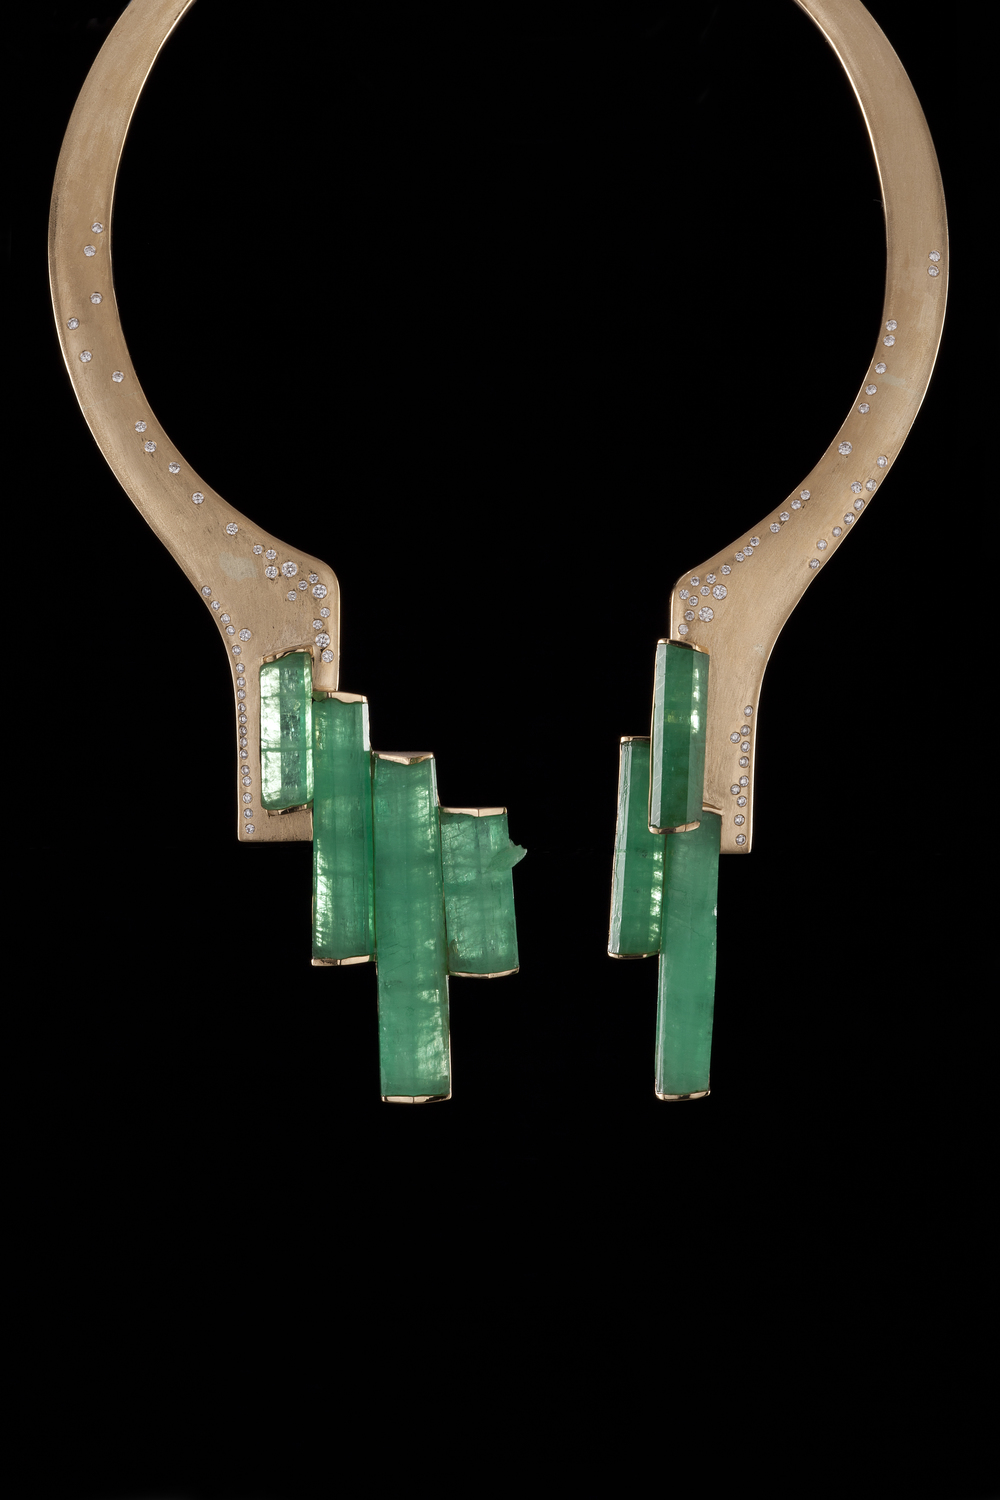 Yunnan emerald crystal necklace